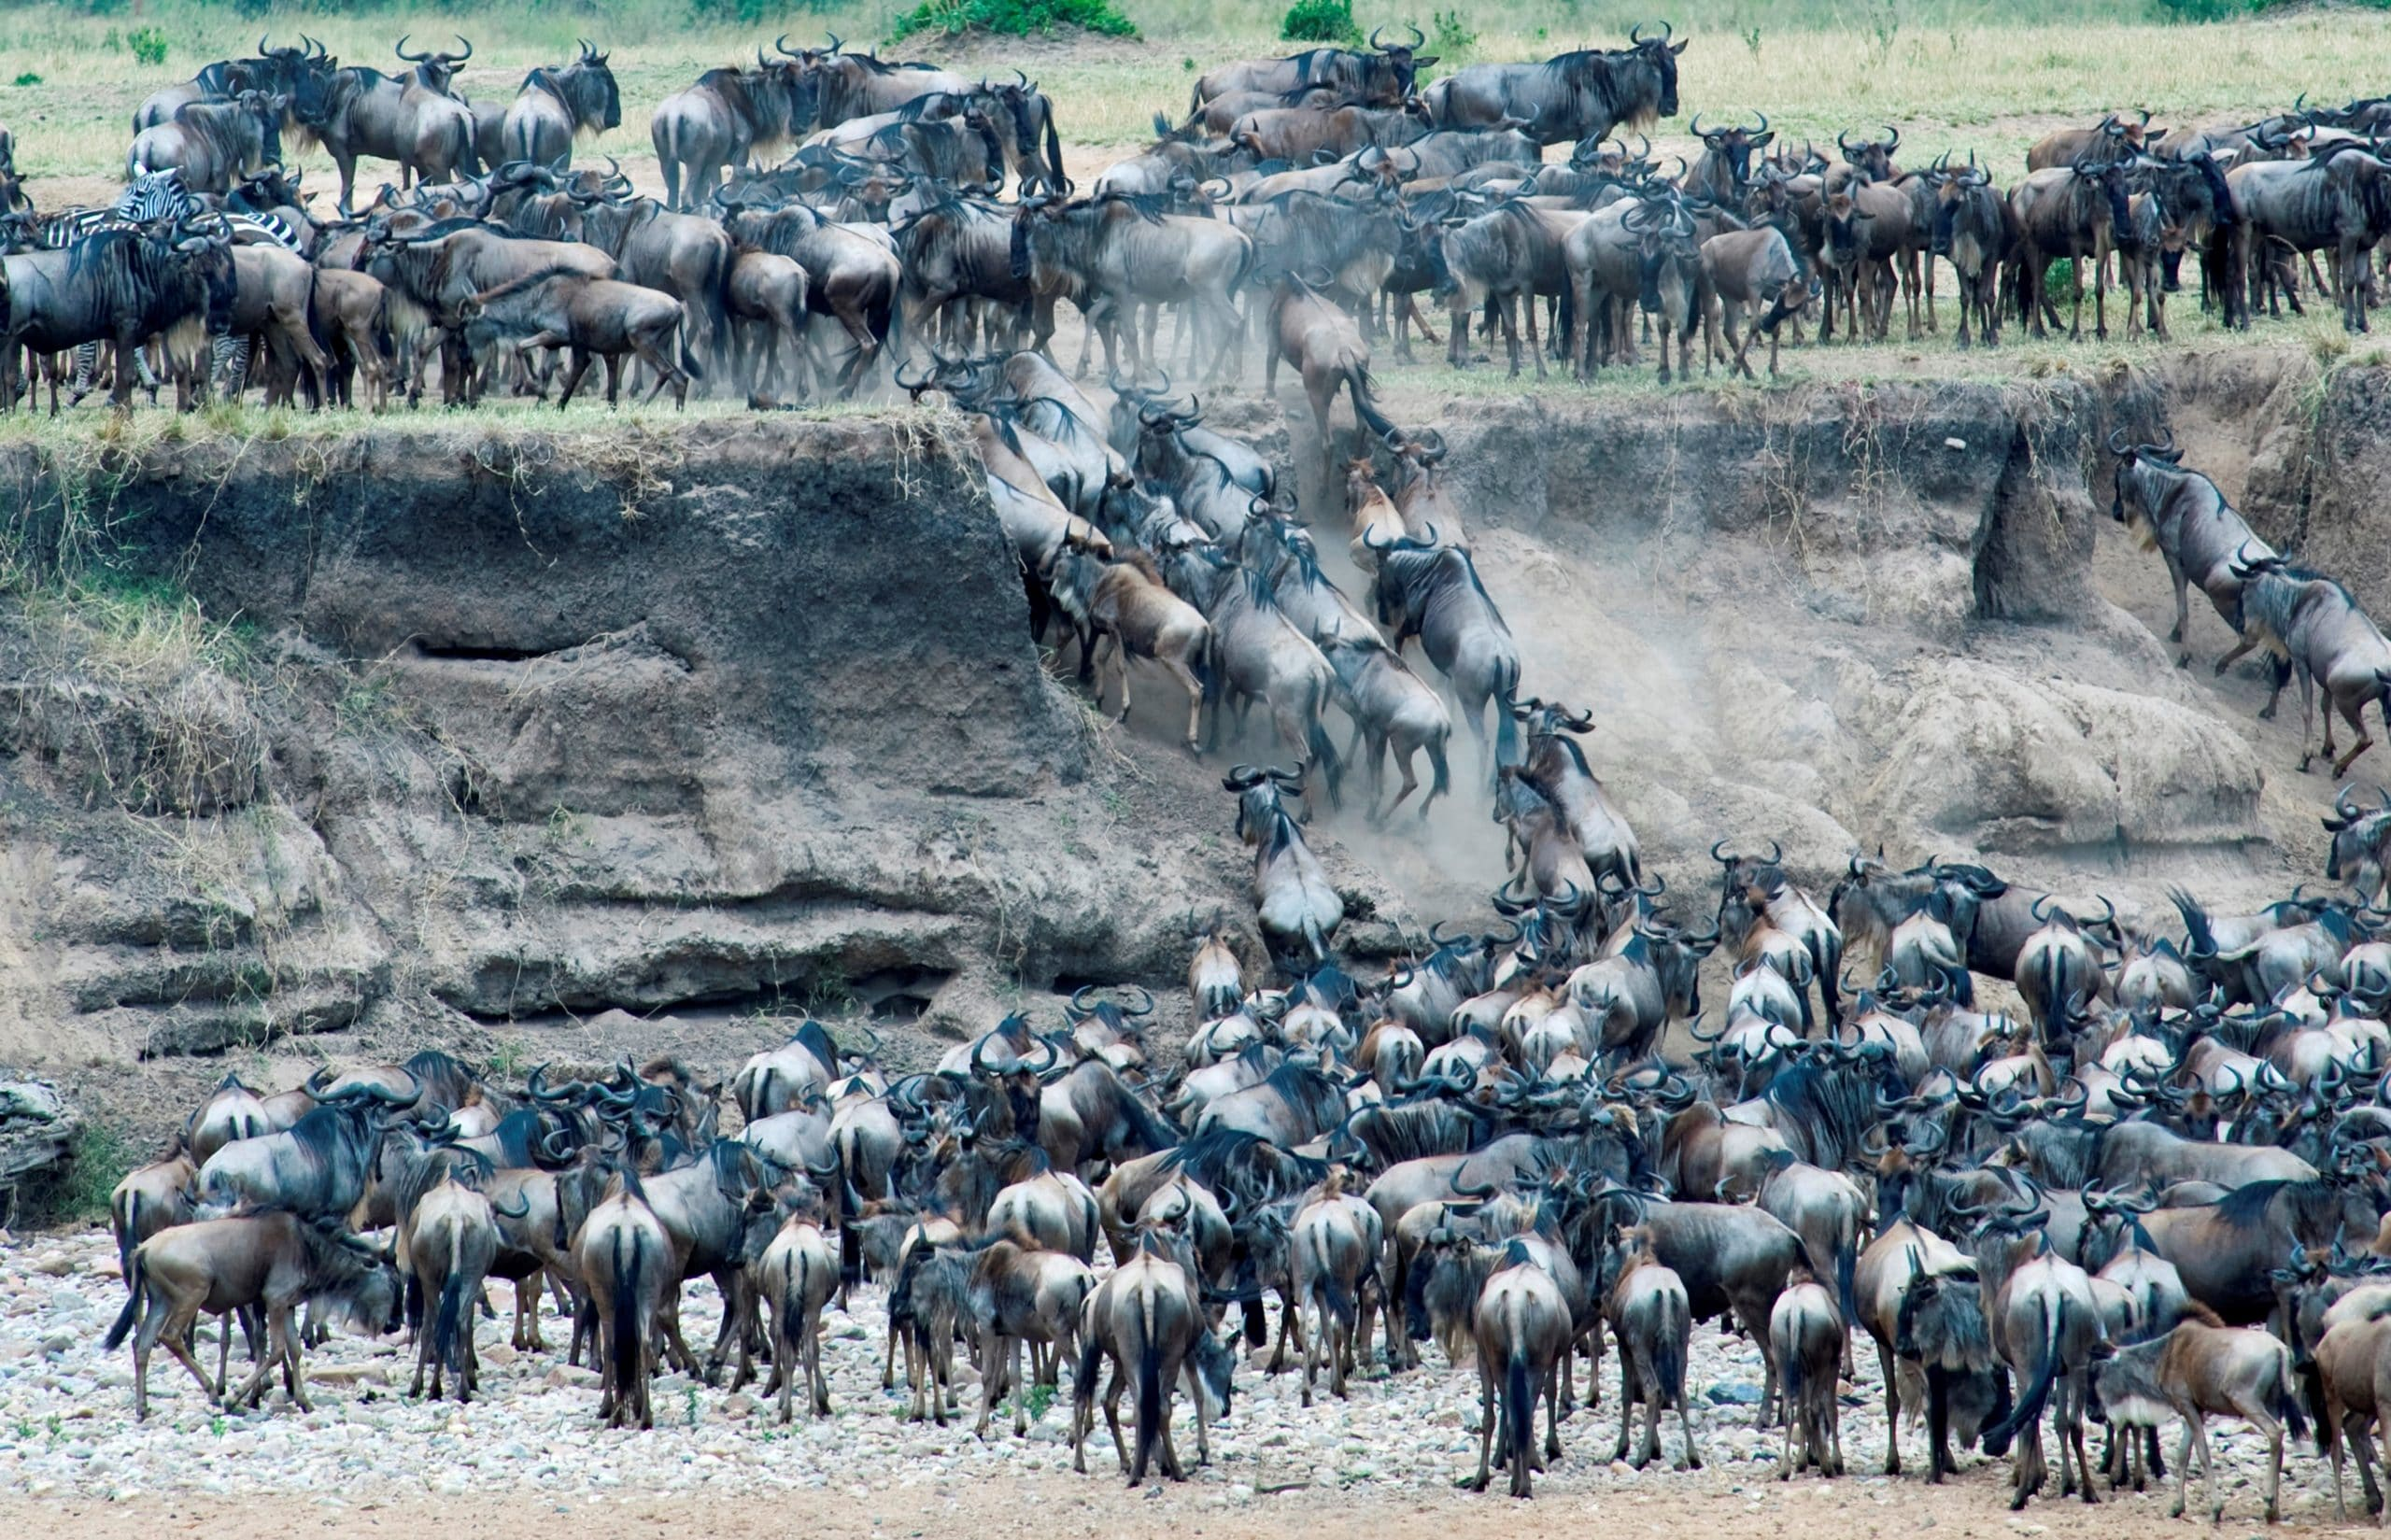 Africa. Tanzania. Serengeti National Park. The Mara River Area. The Annual Migration of The Wildebeests (connochaetes Taurinus)